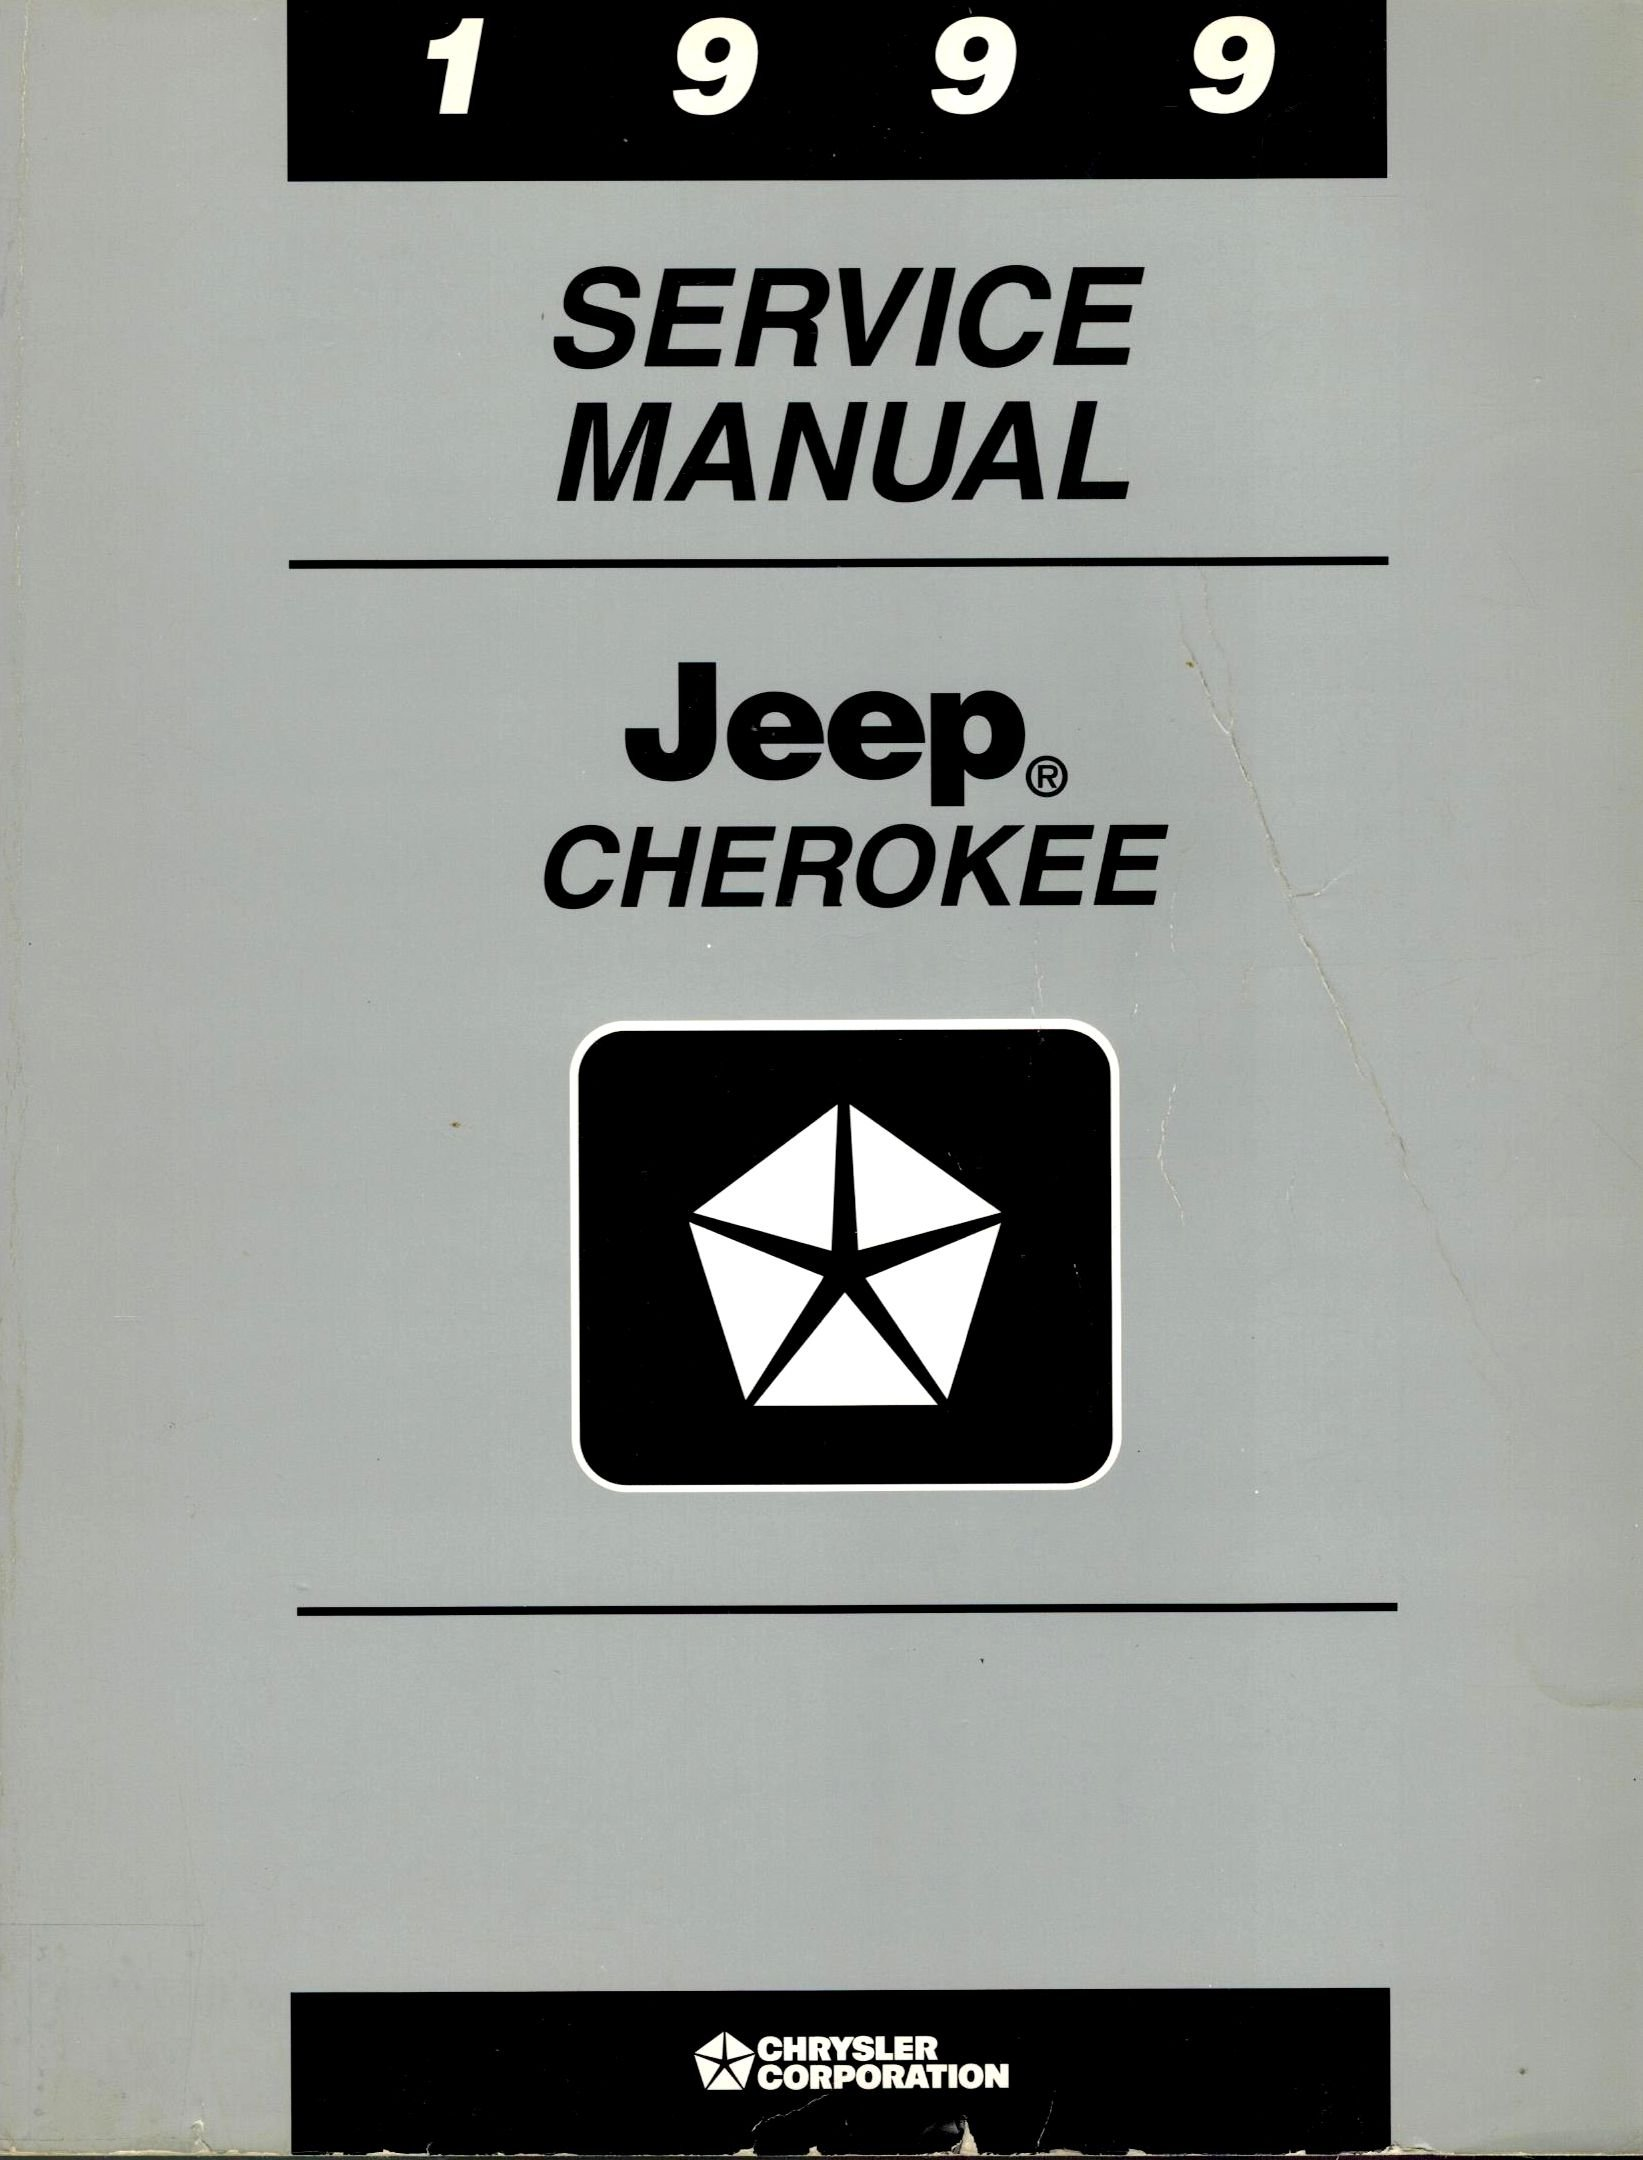 1999 Jeep Cherokee Service Manual (Chrysler Corp., 81-370-9146) Paperback –  1998